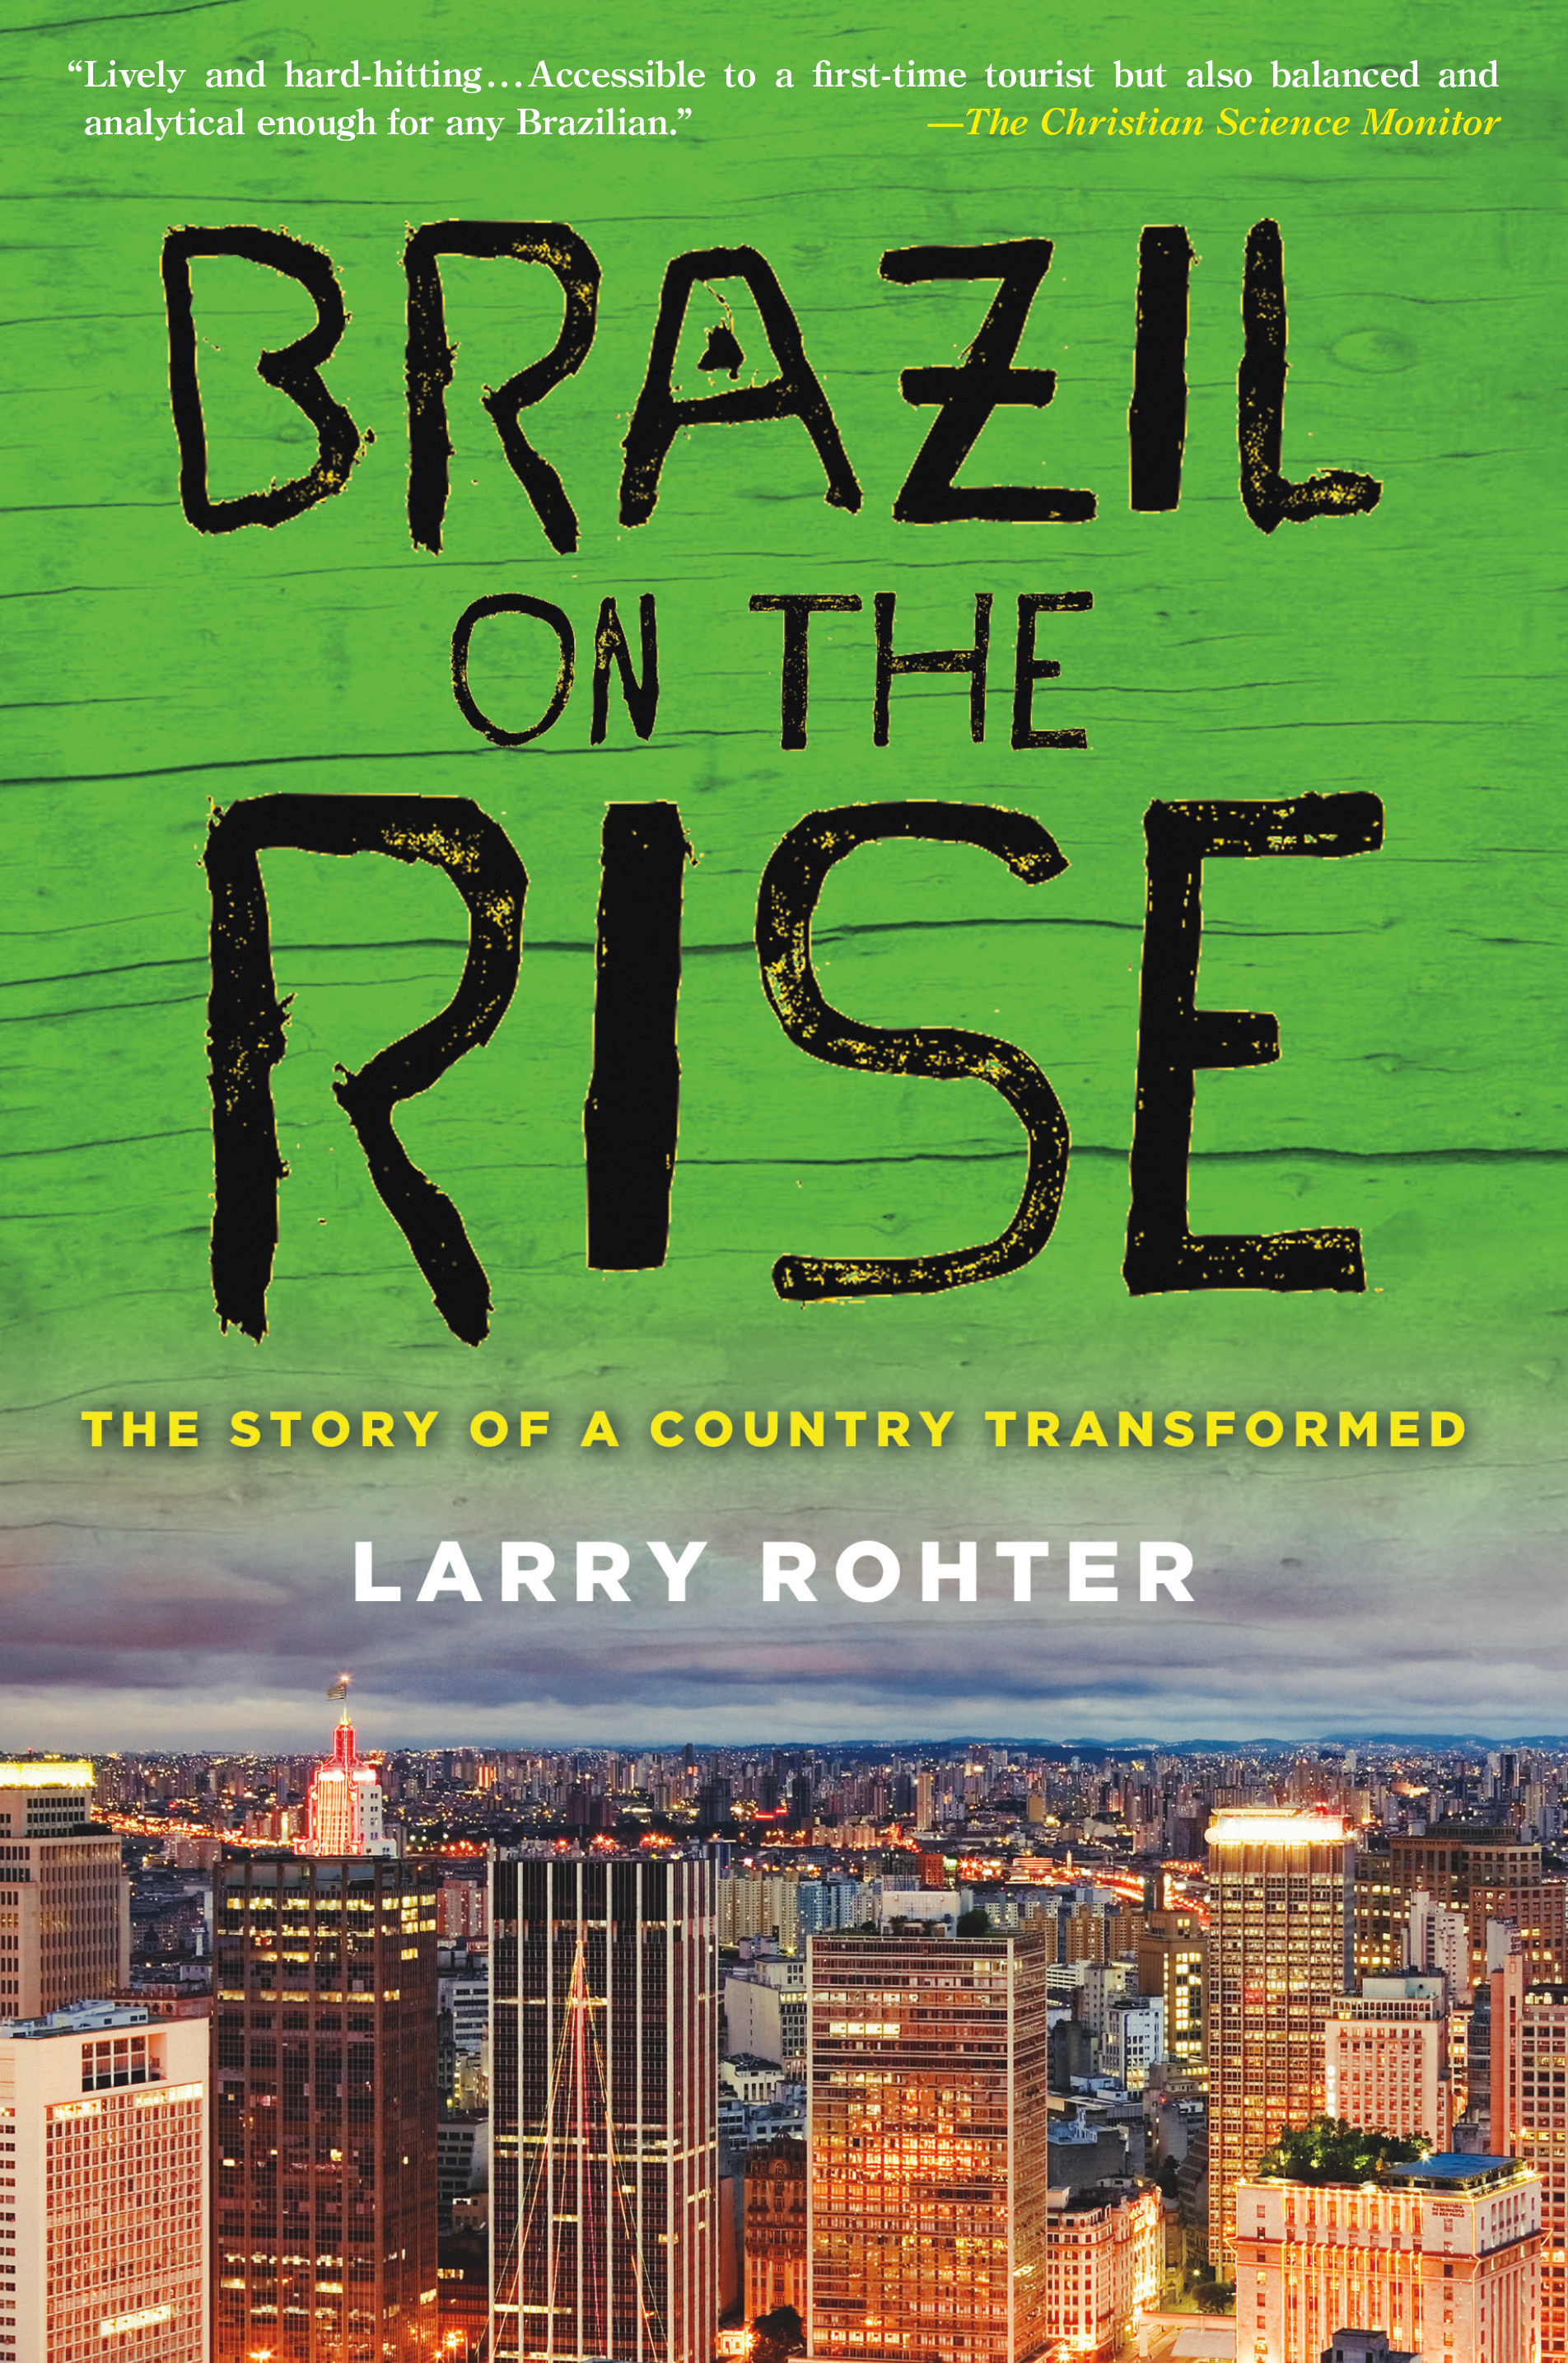 Download Ebook Brazil on the Rise by Larry Rohter Pdf